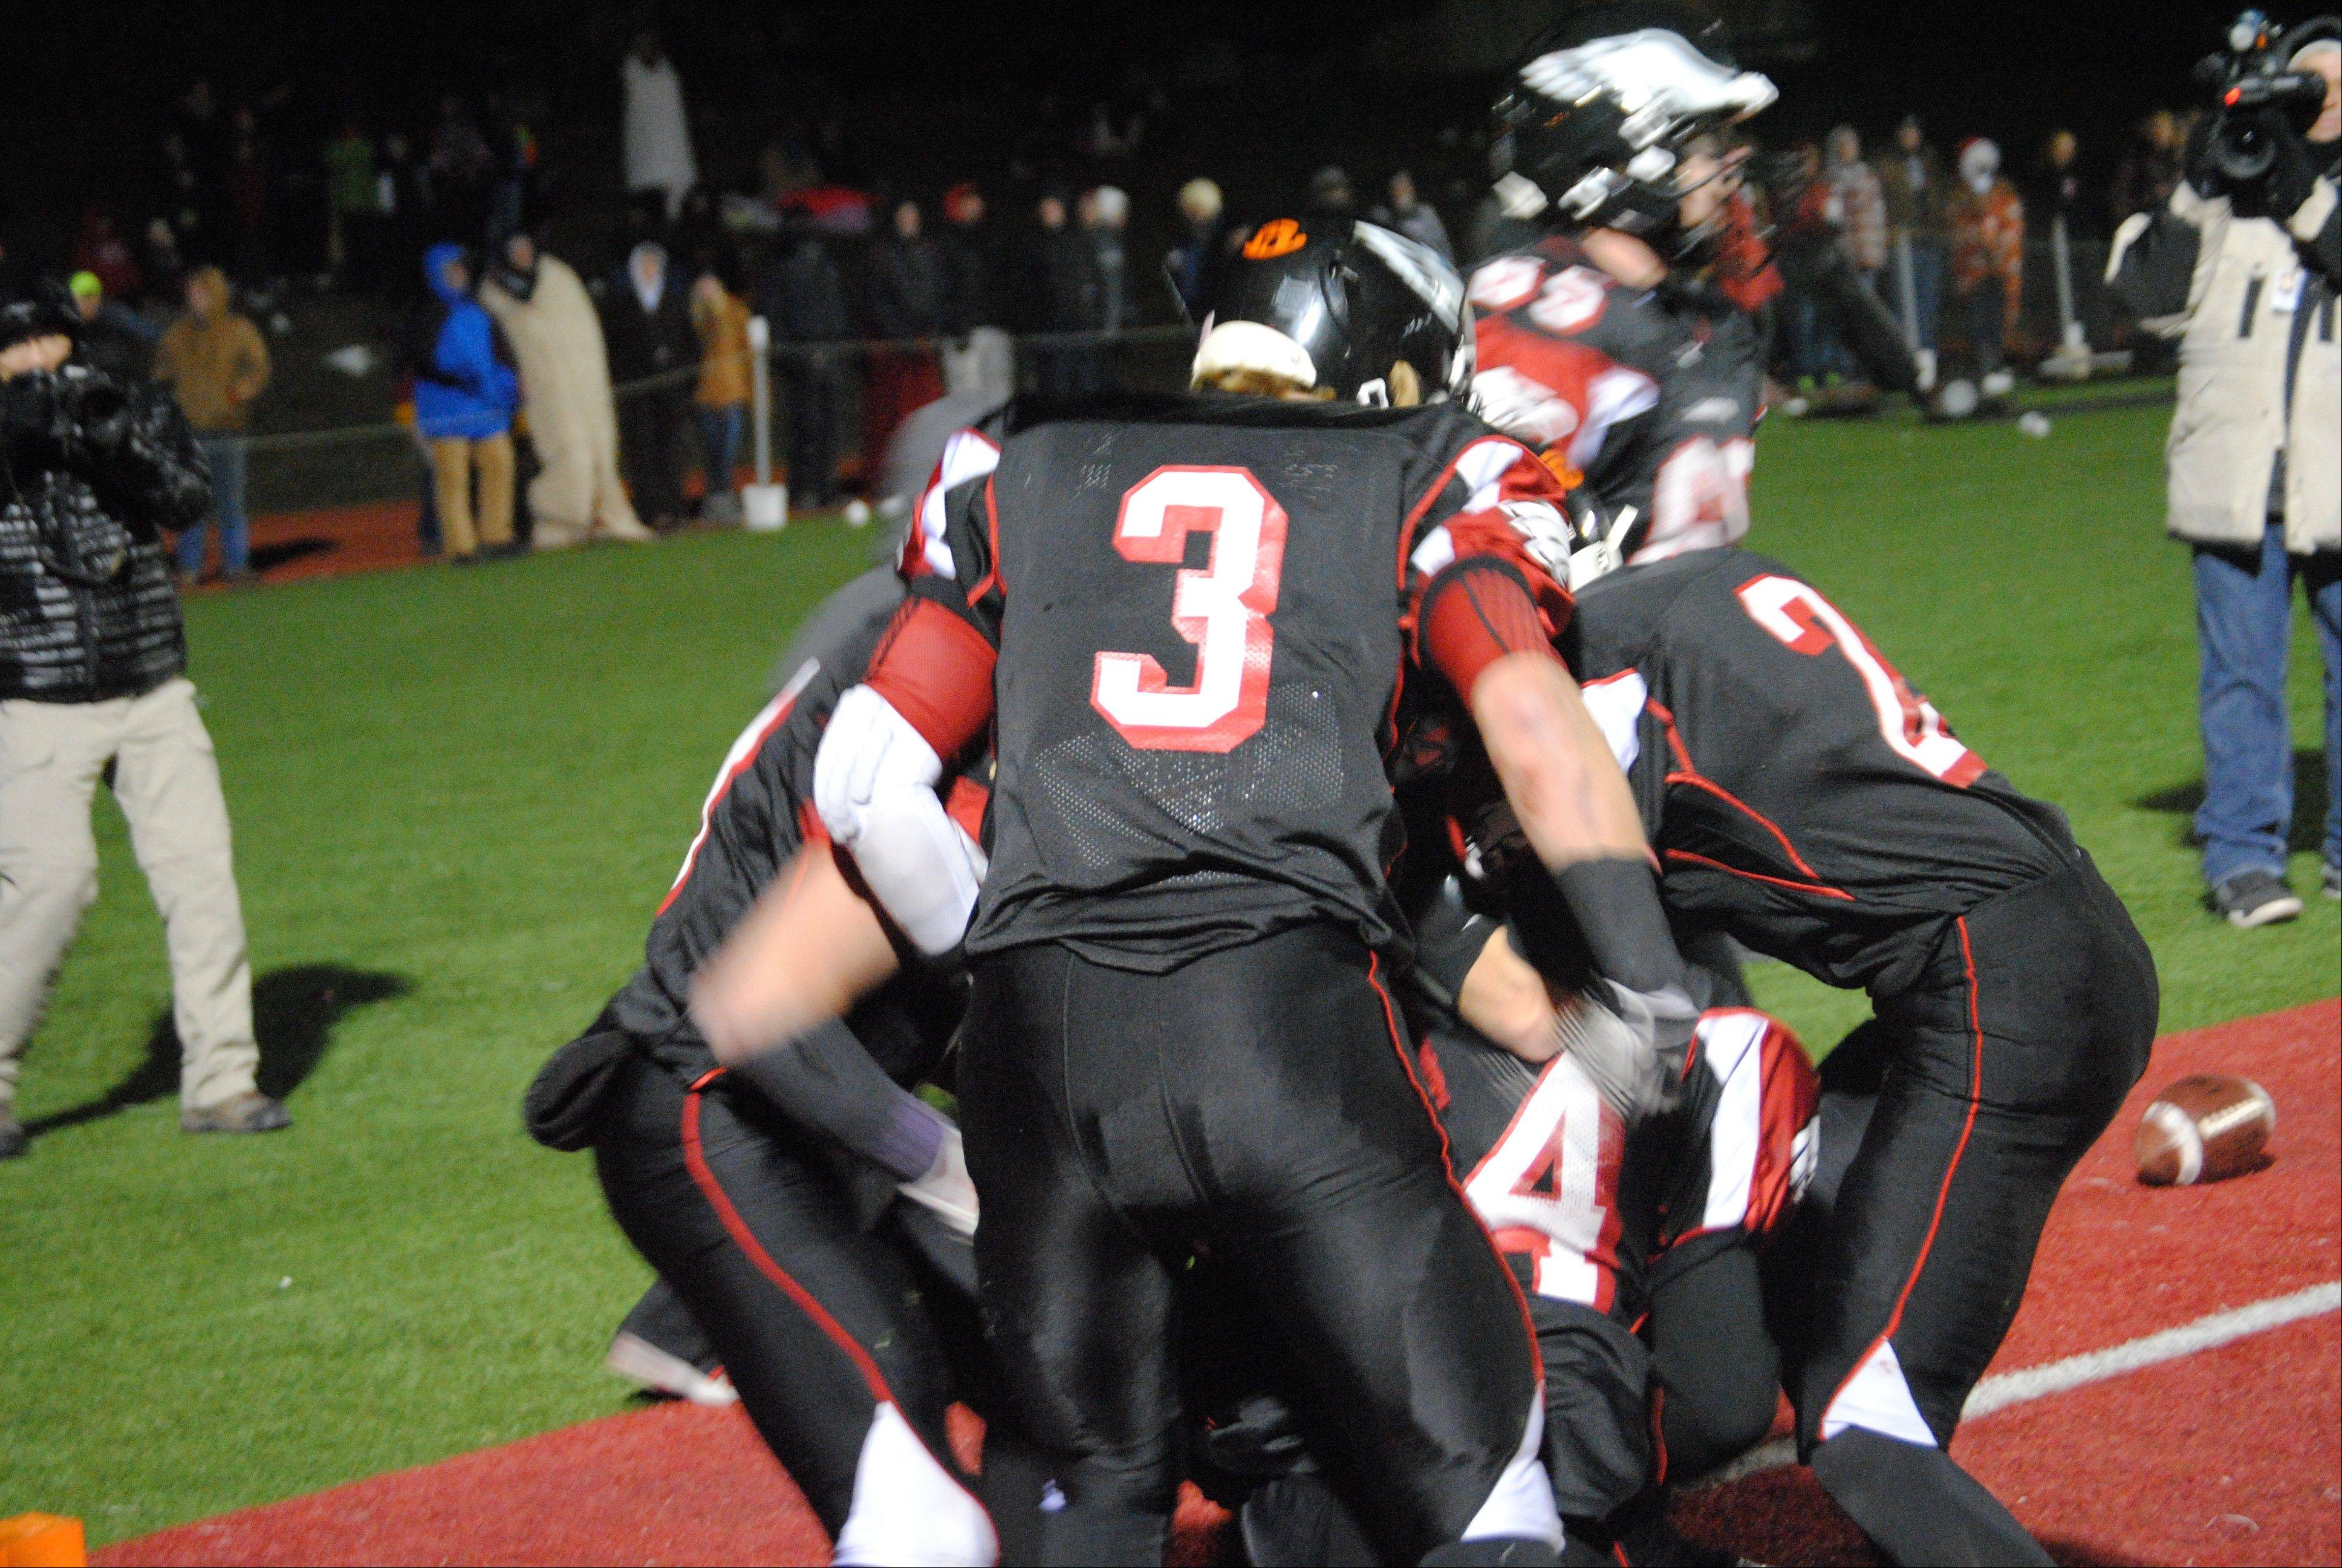 Aurora Christian tailback Legend Smith (44) getting mobbed by jubilant teammates after his 10-yard TD reception that gave the Eagles a 26-21 lead over Stillman Valley with 2:27 remaining during Saturday�s 3A state semifinals in Aurora. Stillman Valley rallied for a 28-26 win.